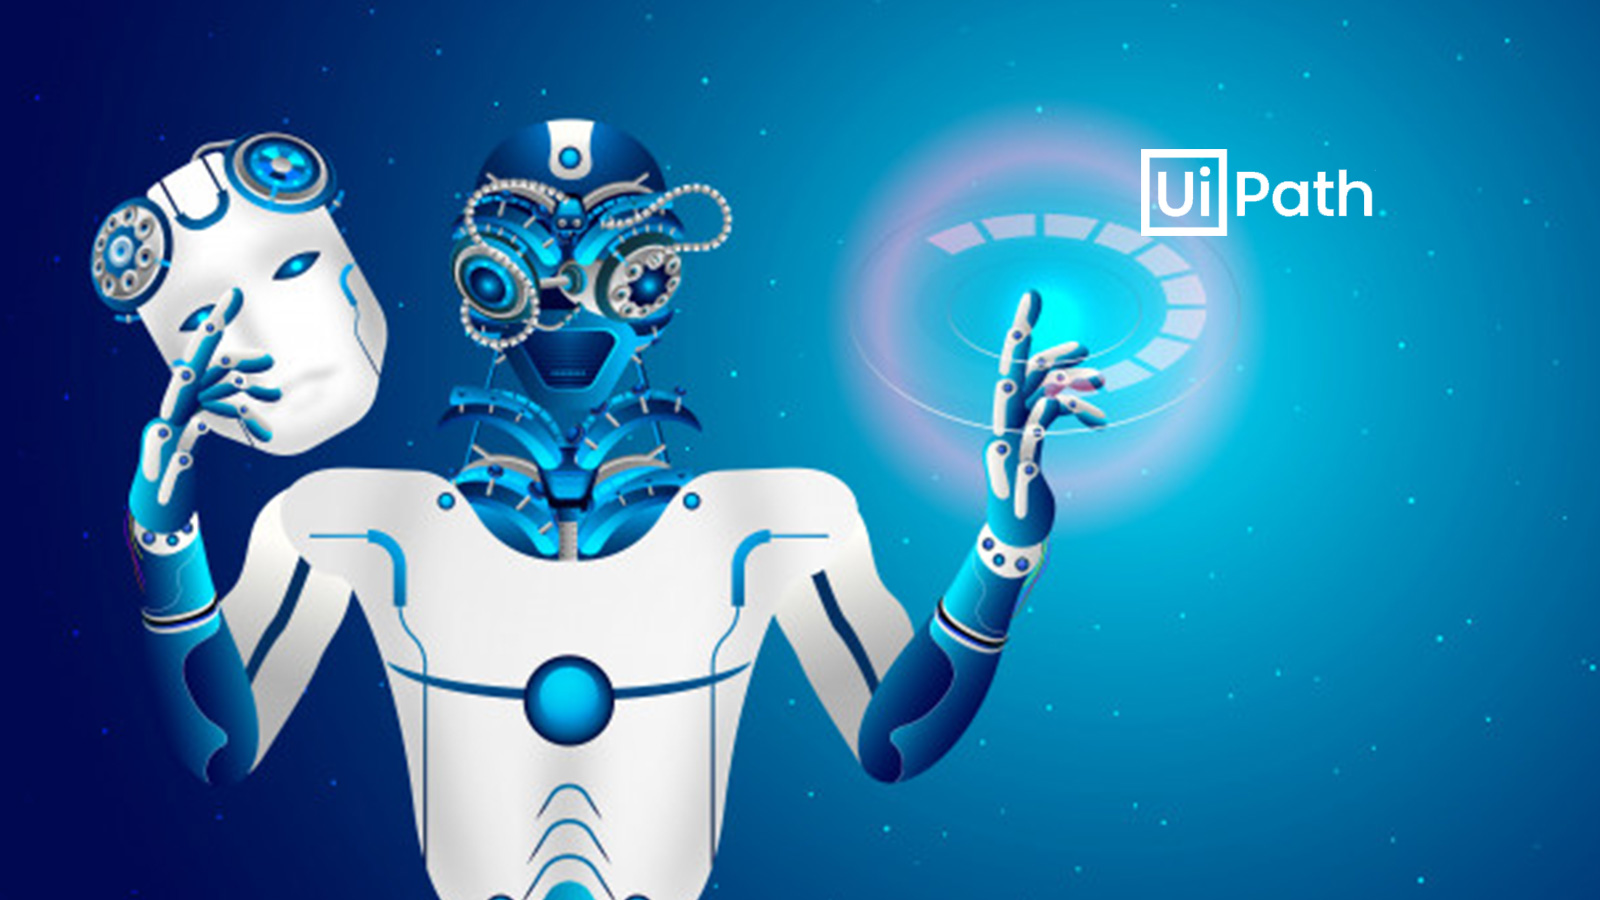 UiPath Brings Robotic Process Automation to SAP Applications